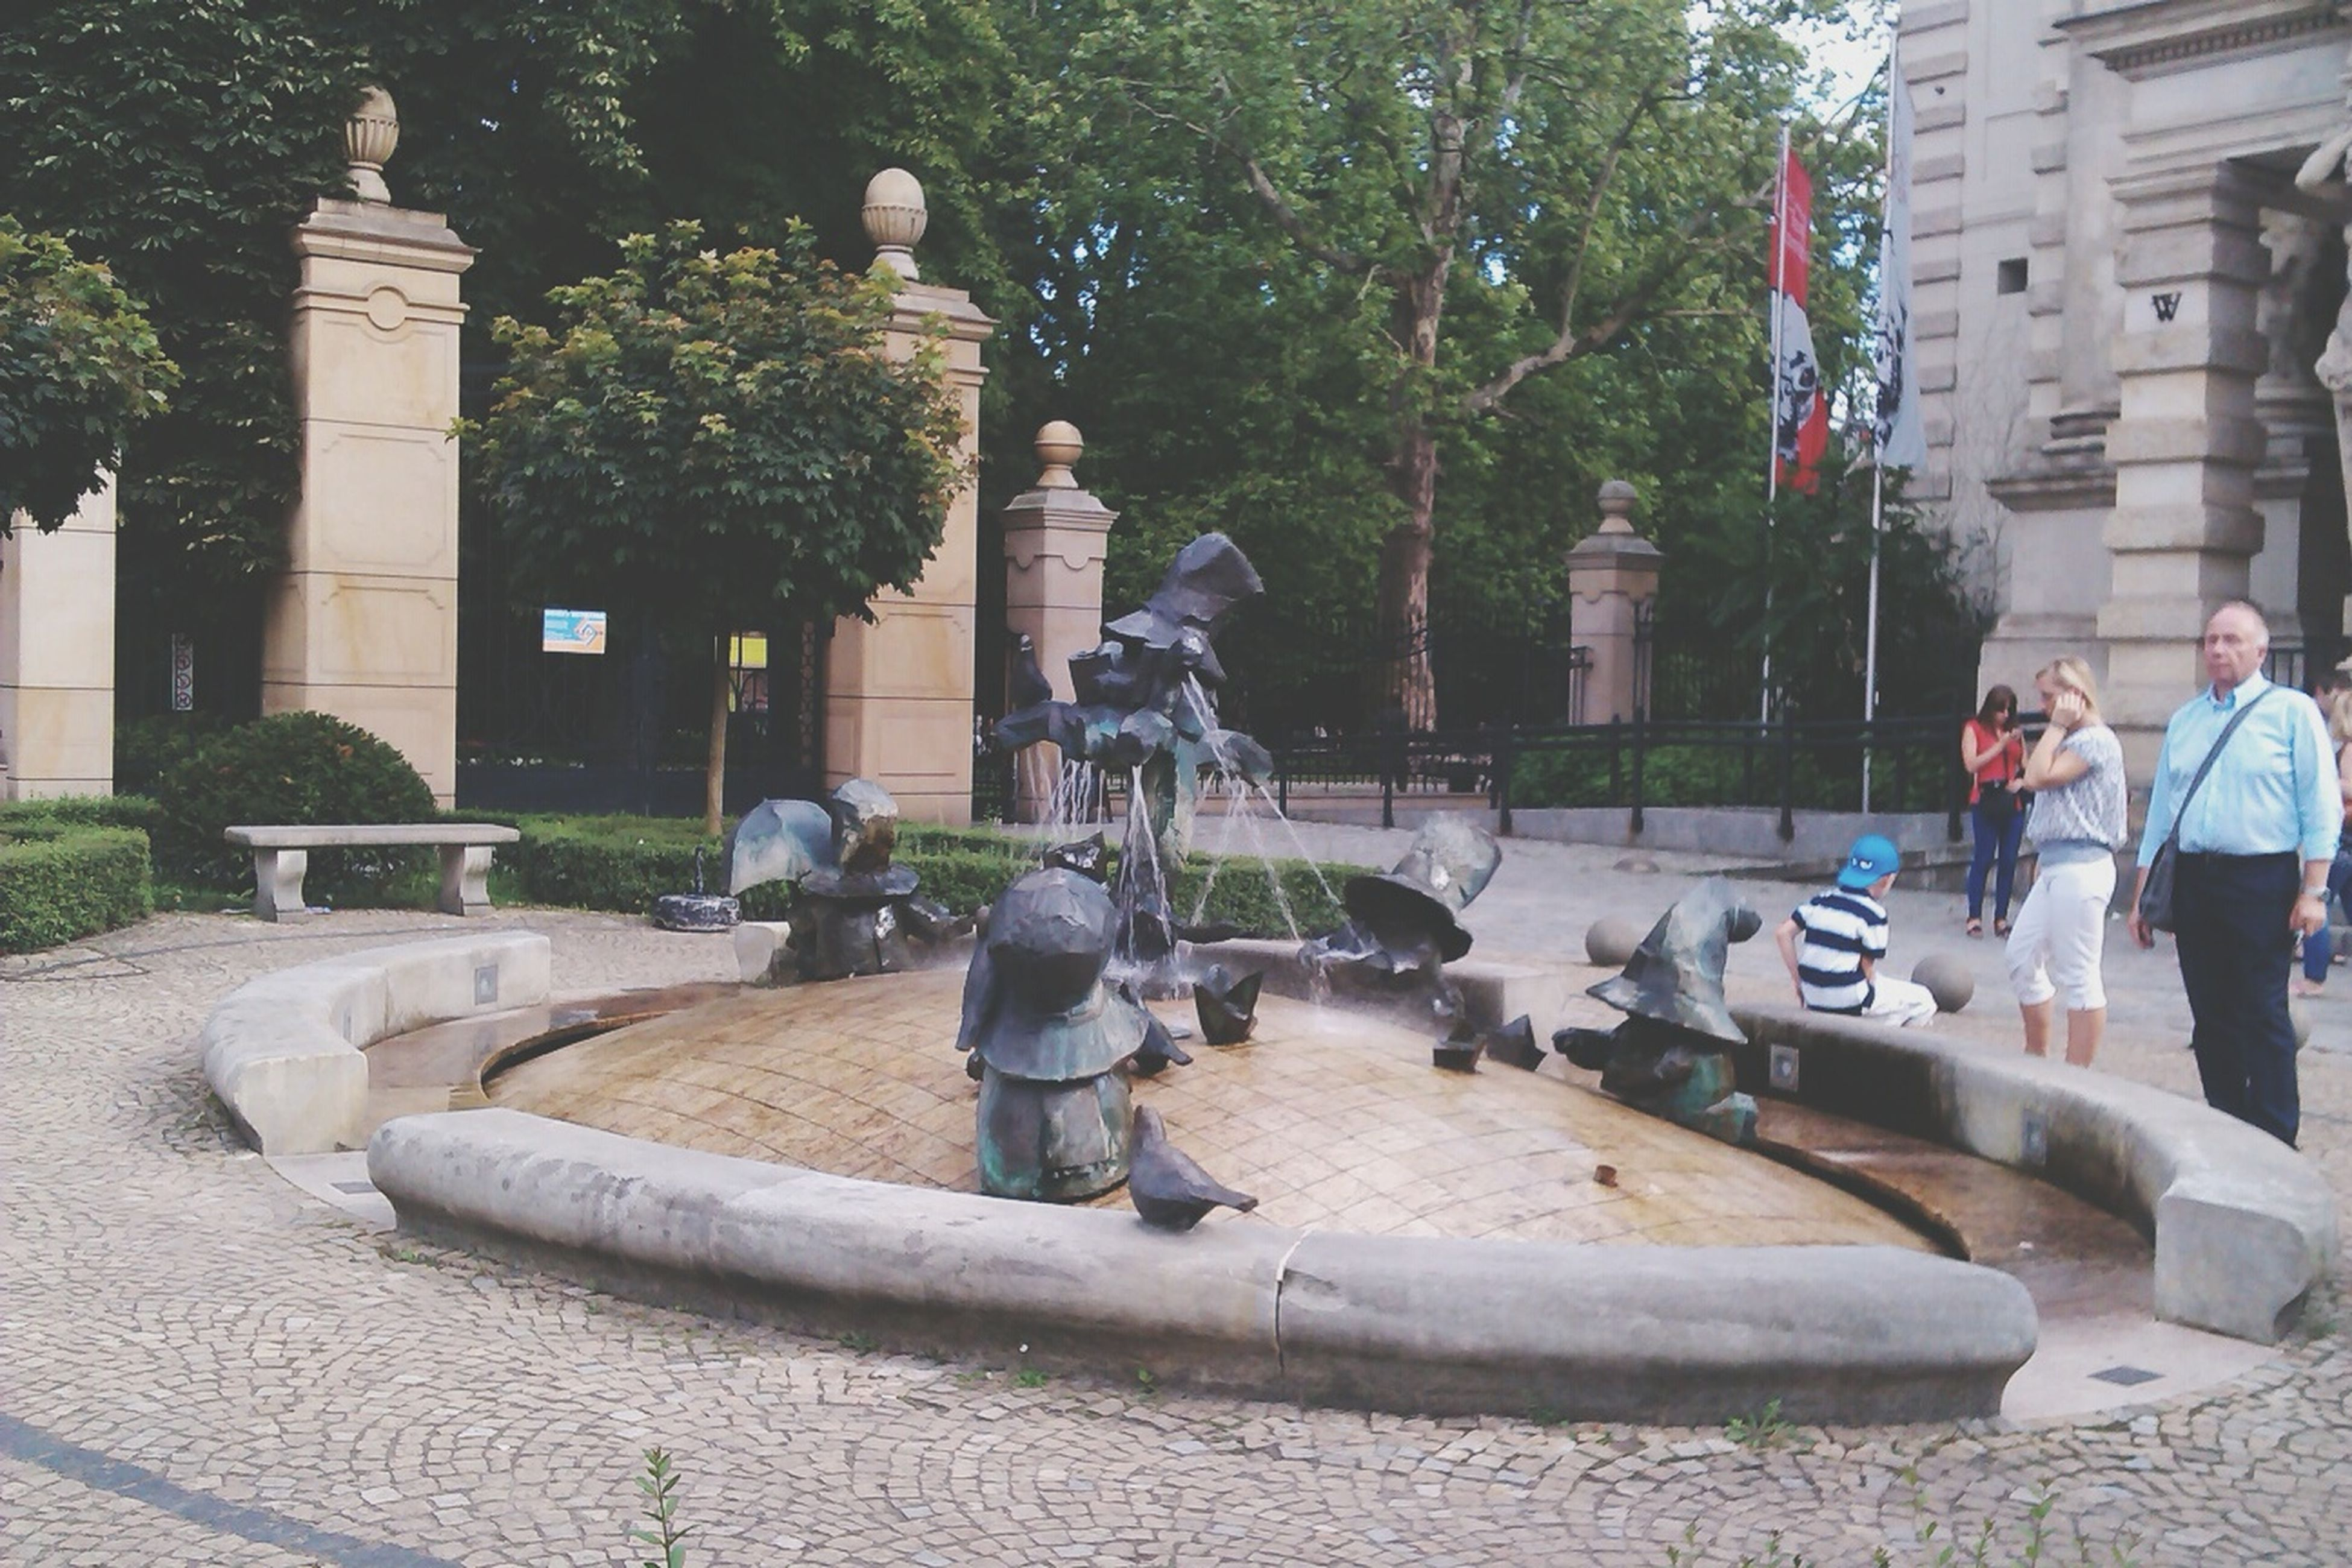 tree, building exterior, built structure, statue, architecture, sculpture, fountain, water, park - man made space, sitting, incidental people, city, art and craft, leisure activity, men, day, human representation, lifestyles